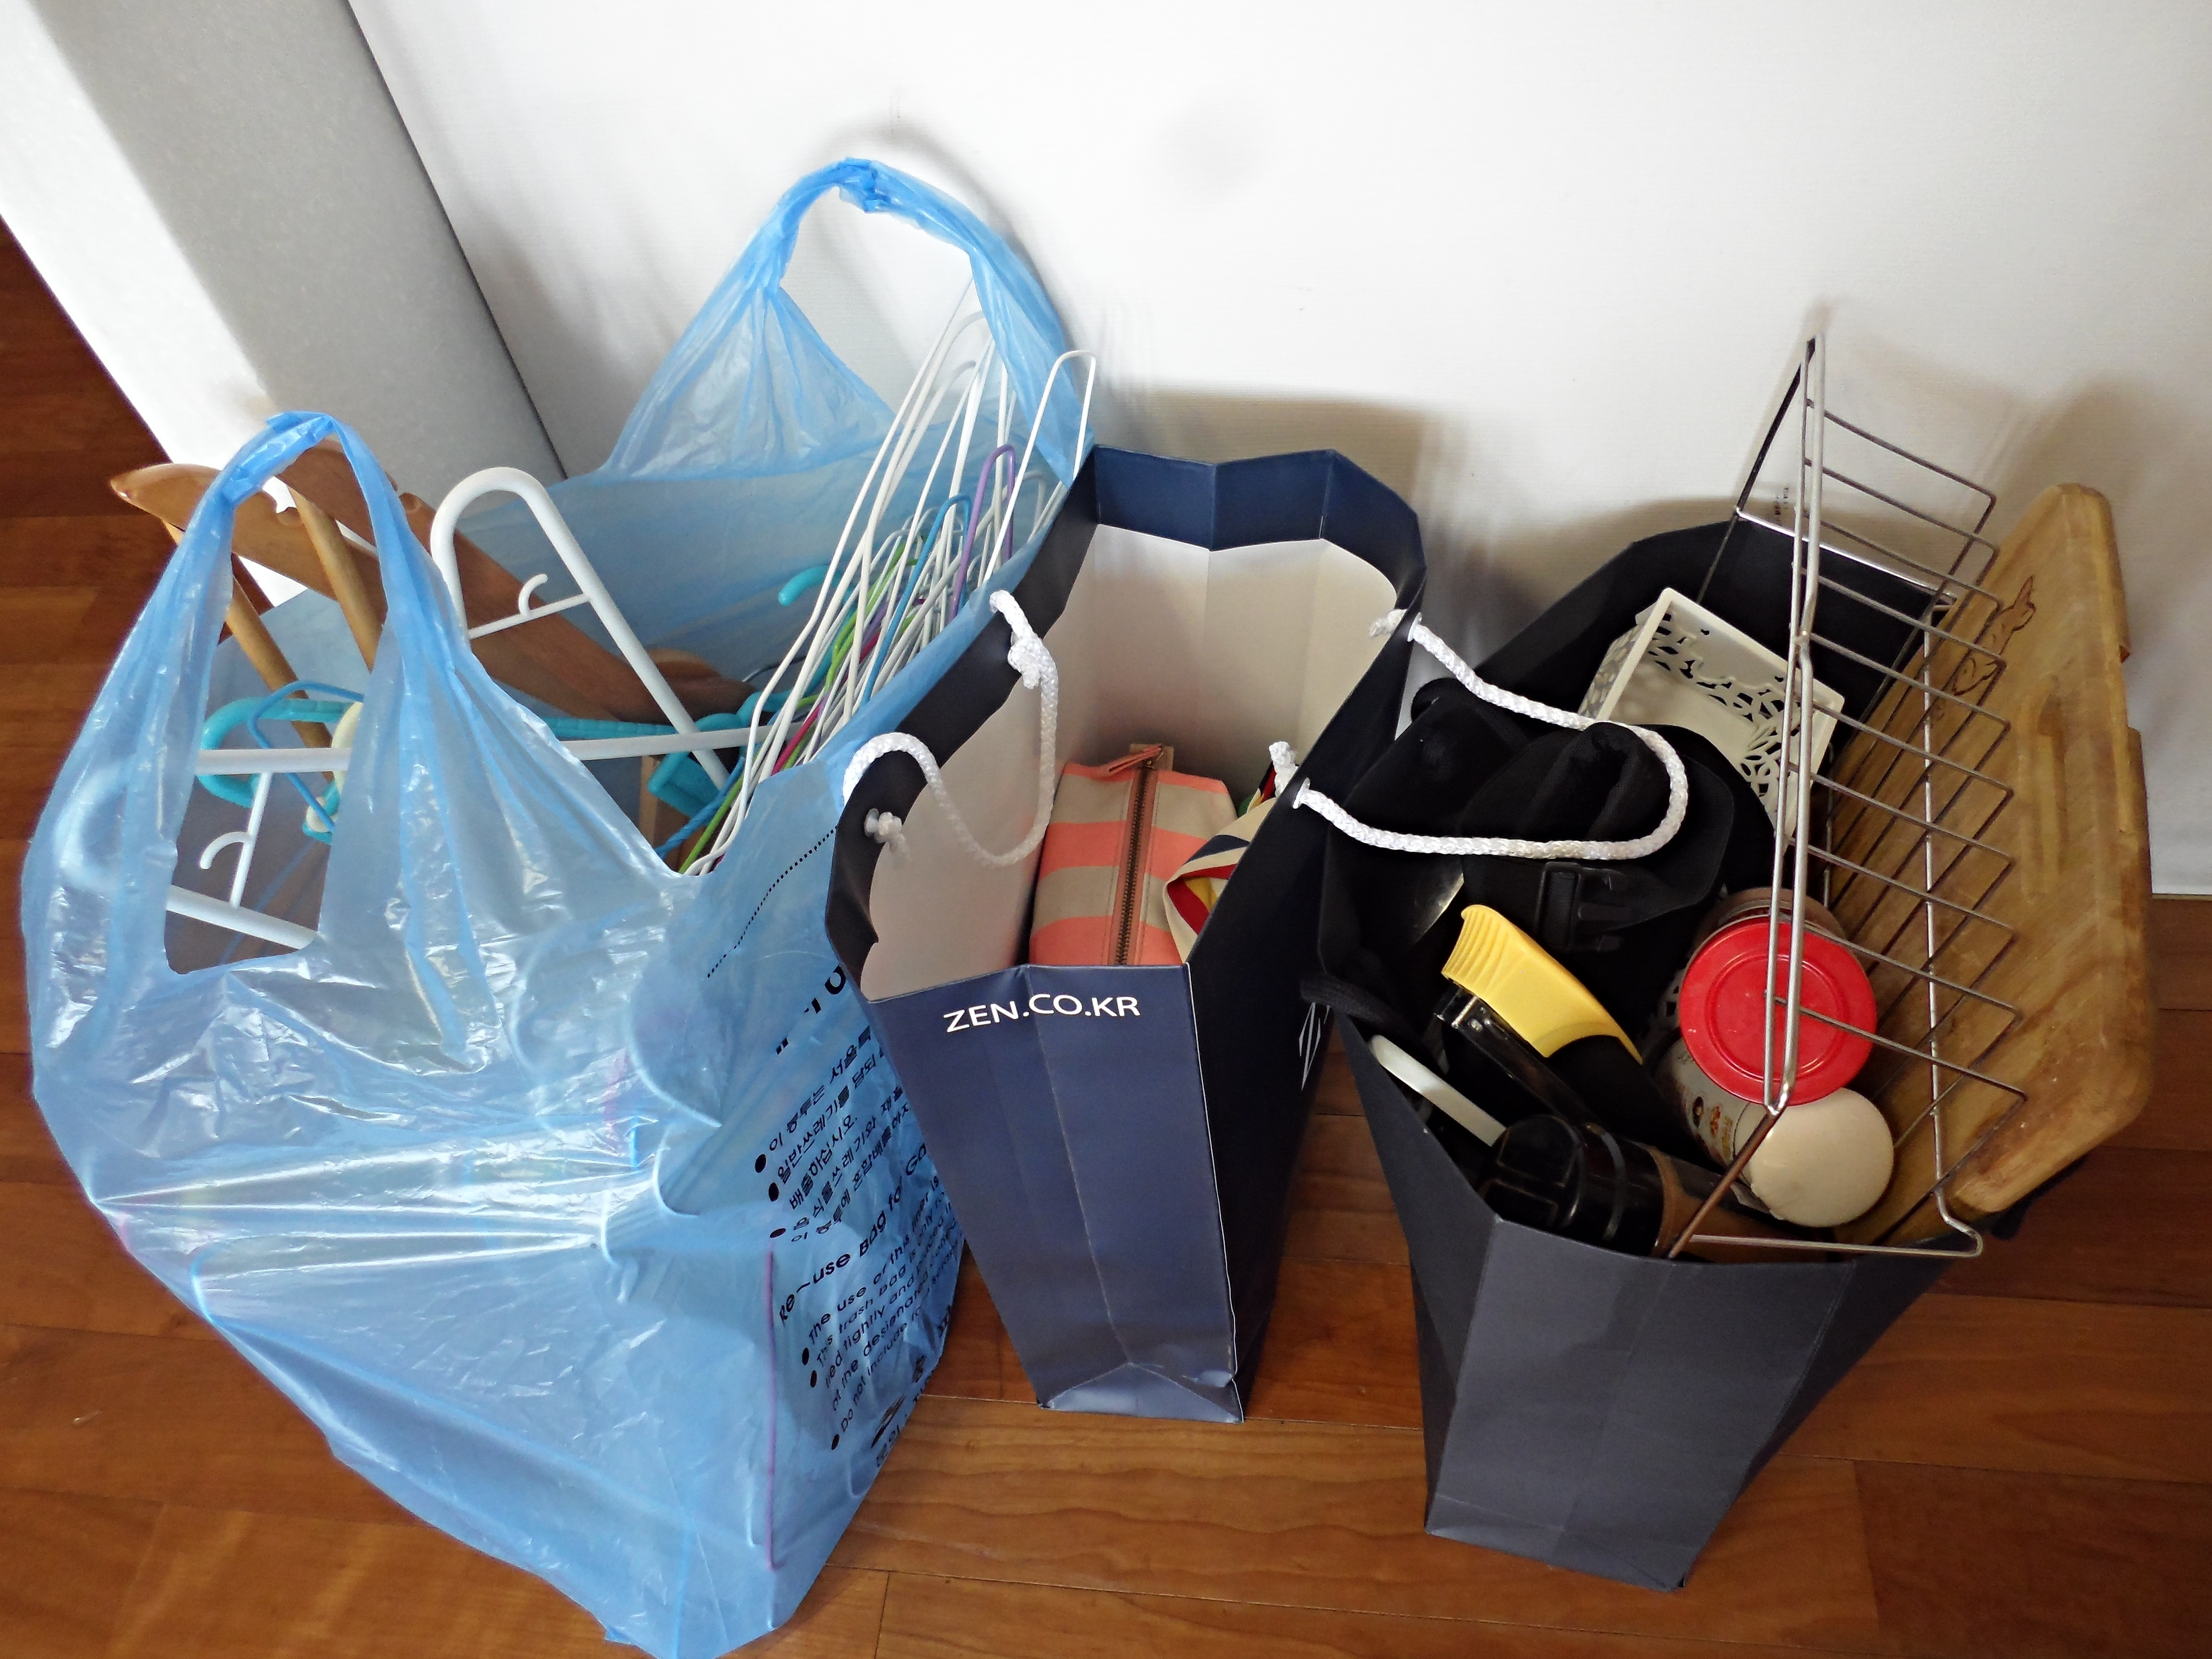 Selling goods and spring cleaning